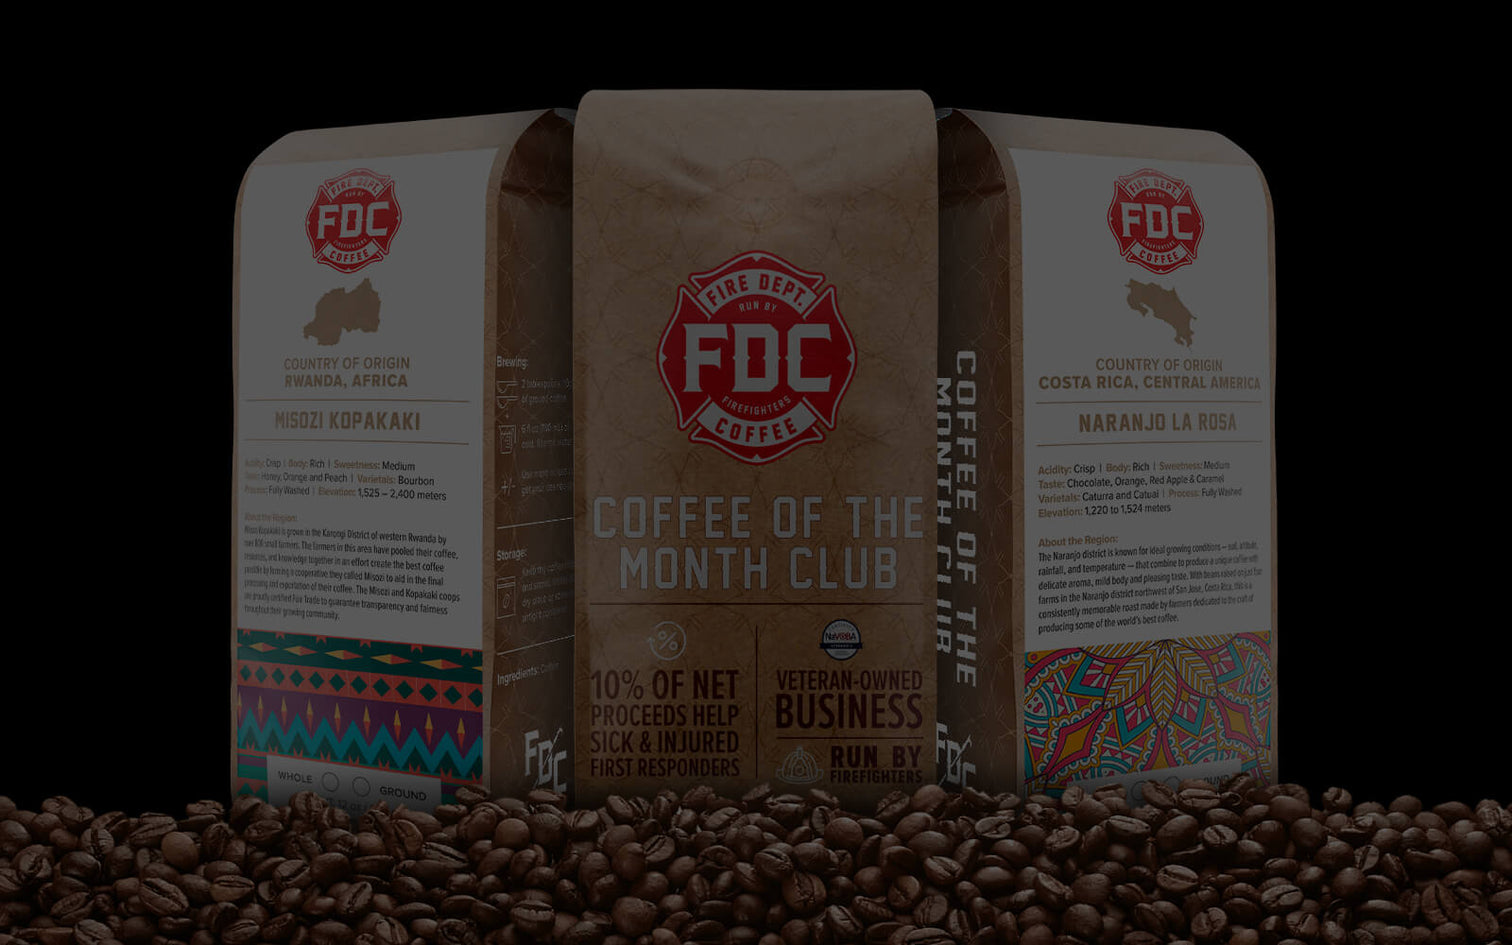 Coffee of the Month Club coffee bags.